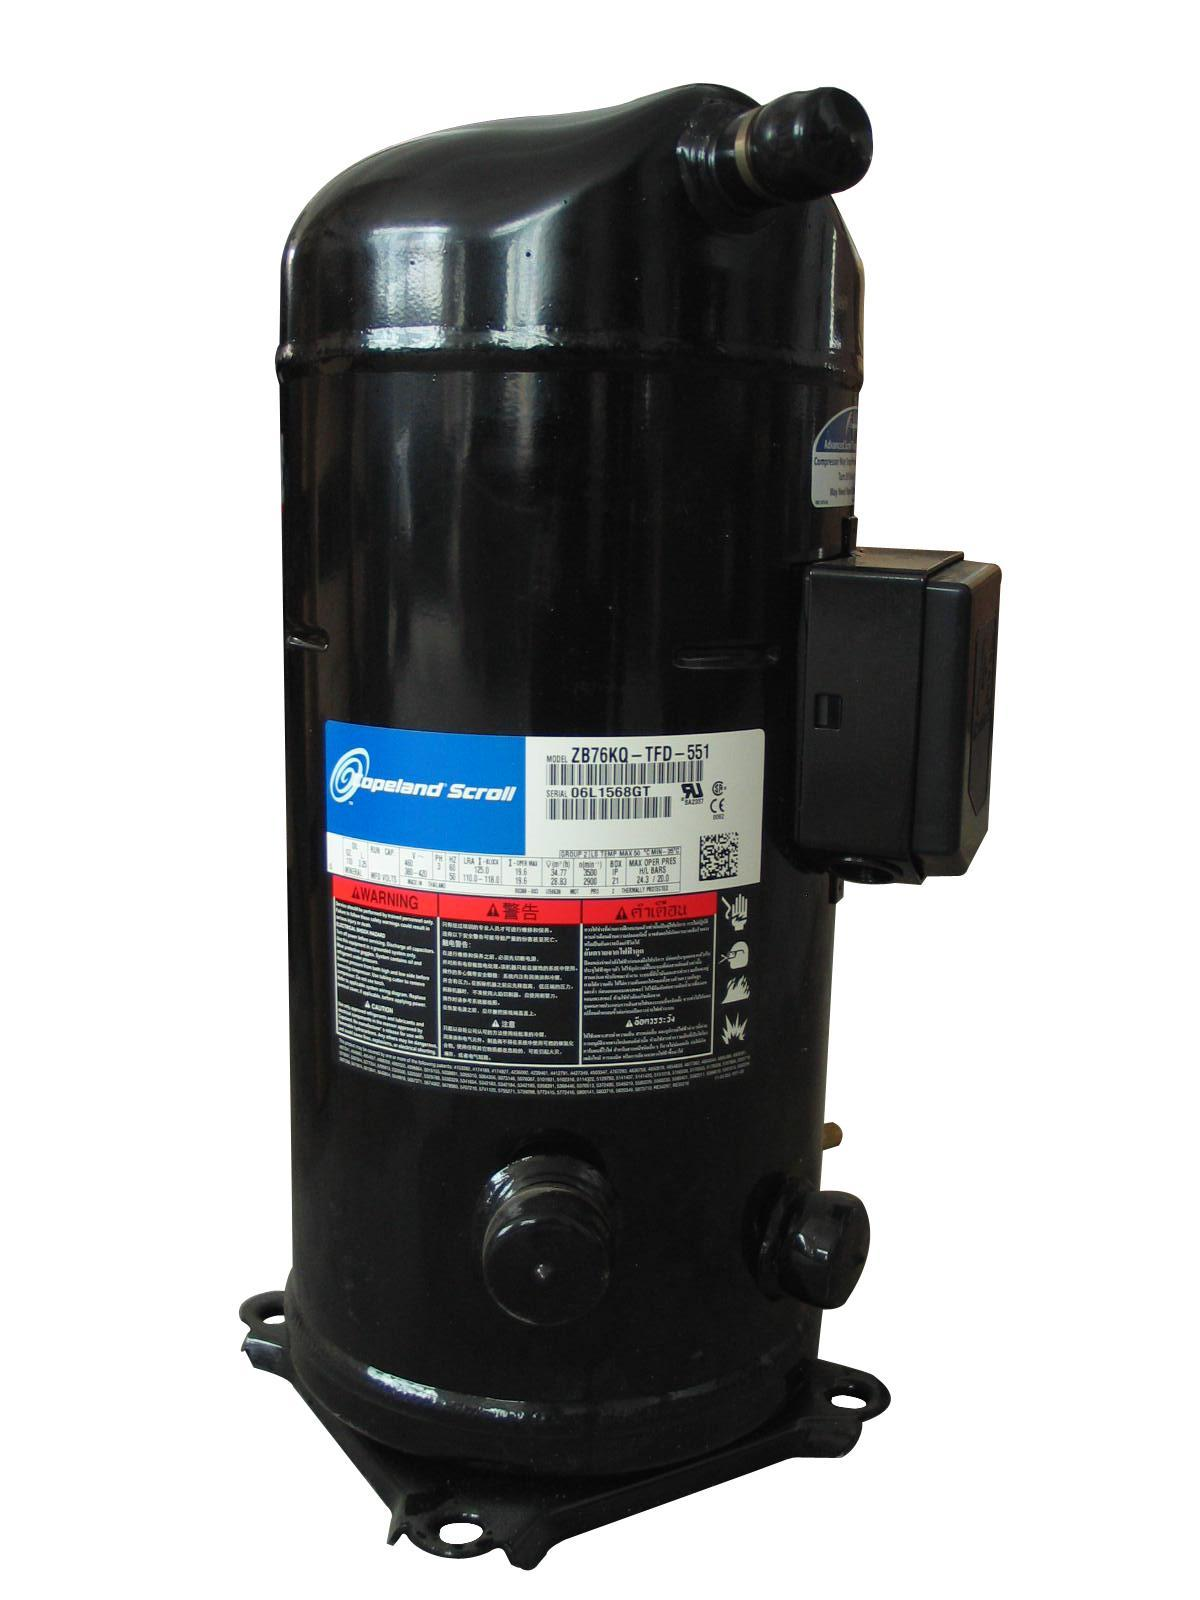 A compressor from a refrigeration/cooling system